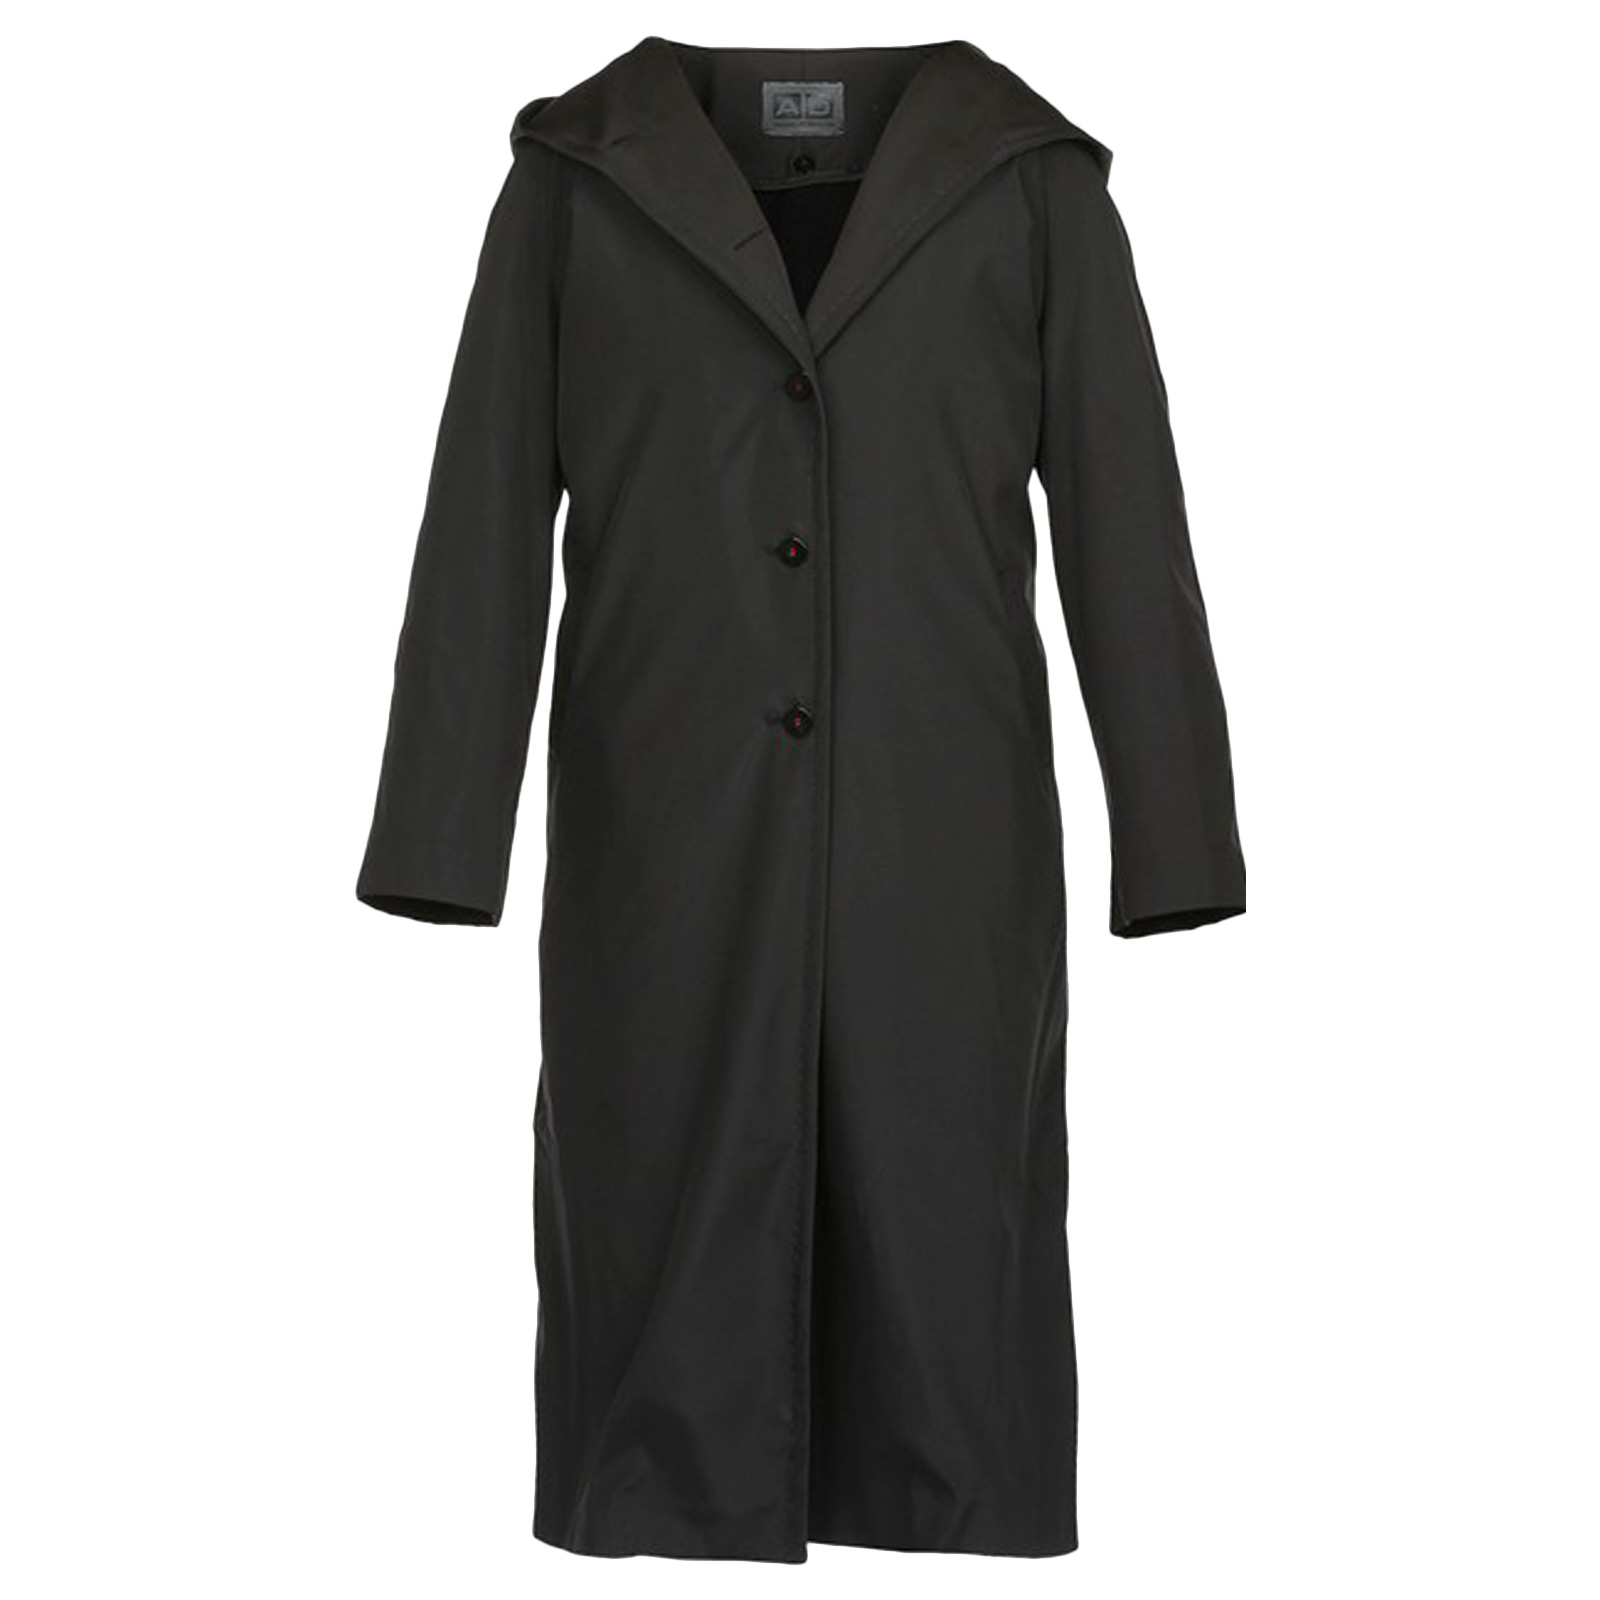 When the weather turns cold and damp, keep warm and dry with the women's raincoats we offer! We have all the styles of outerwear you want, including women's lightweight rain jackets and women's black raincoats. We also feature a variety of sizes, including women's plus size raincoats.